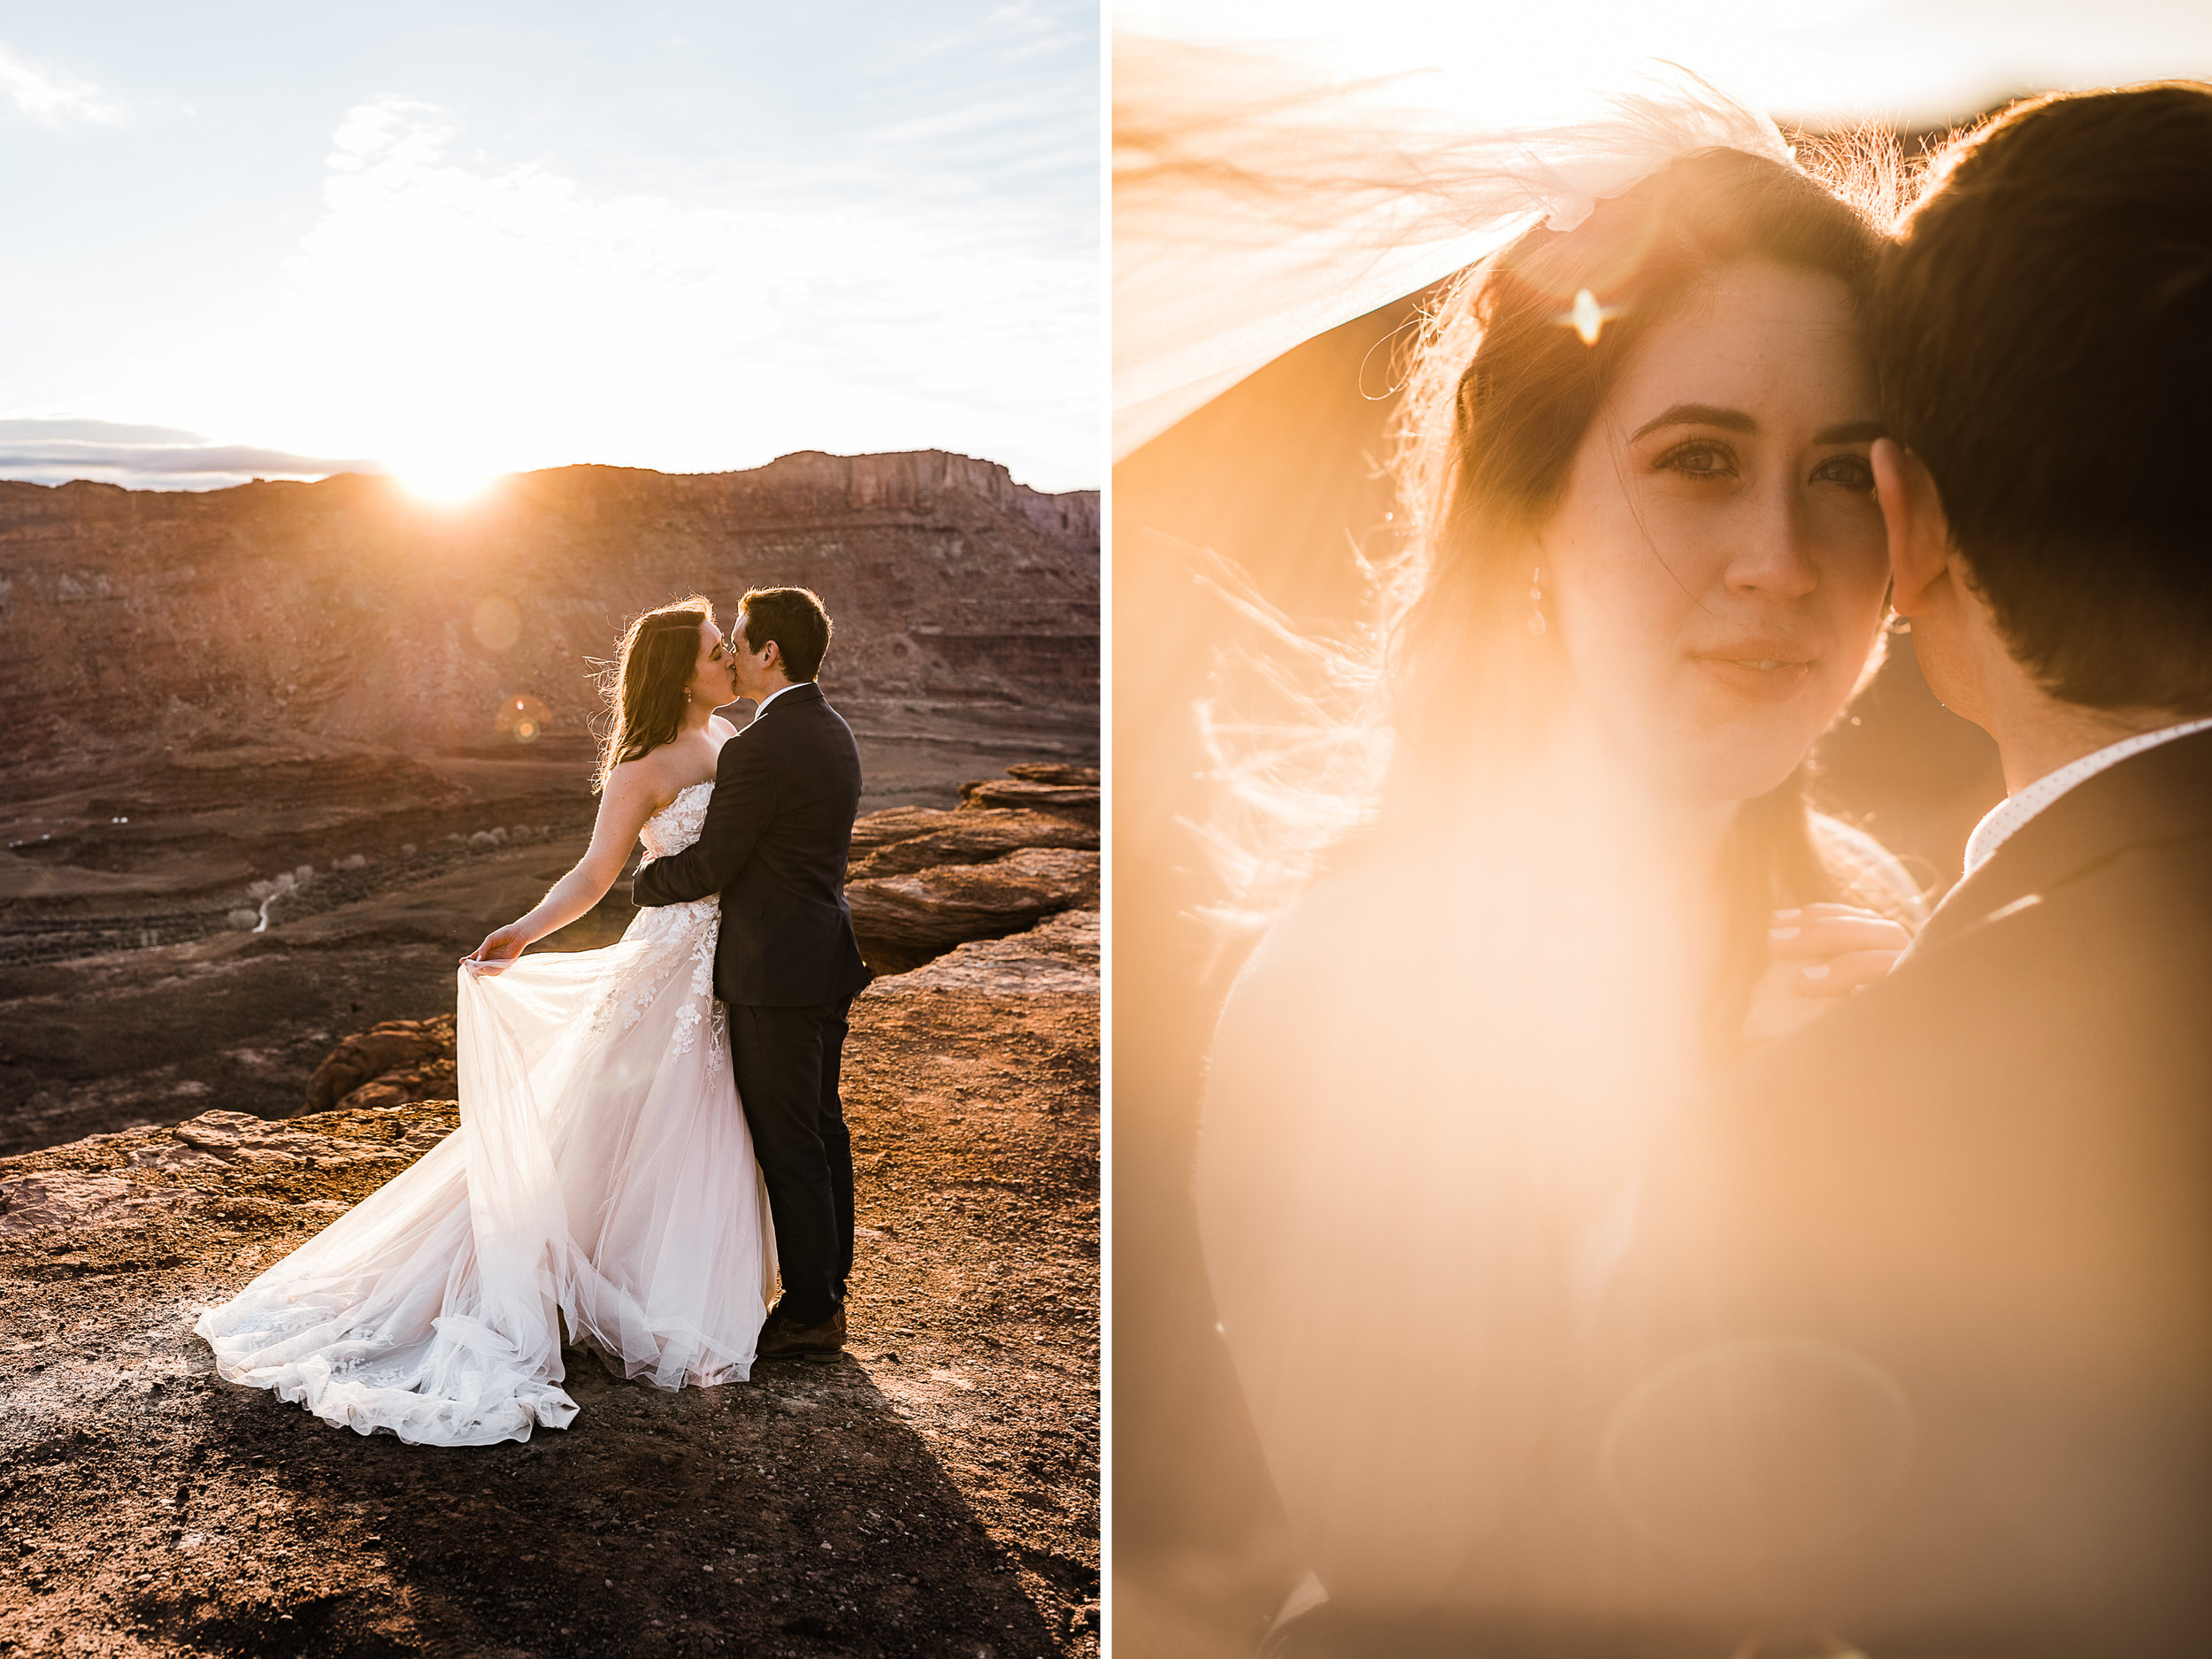 Sunrise adventures in Arches National Park.